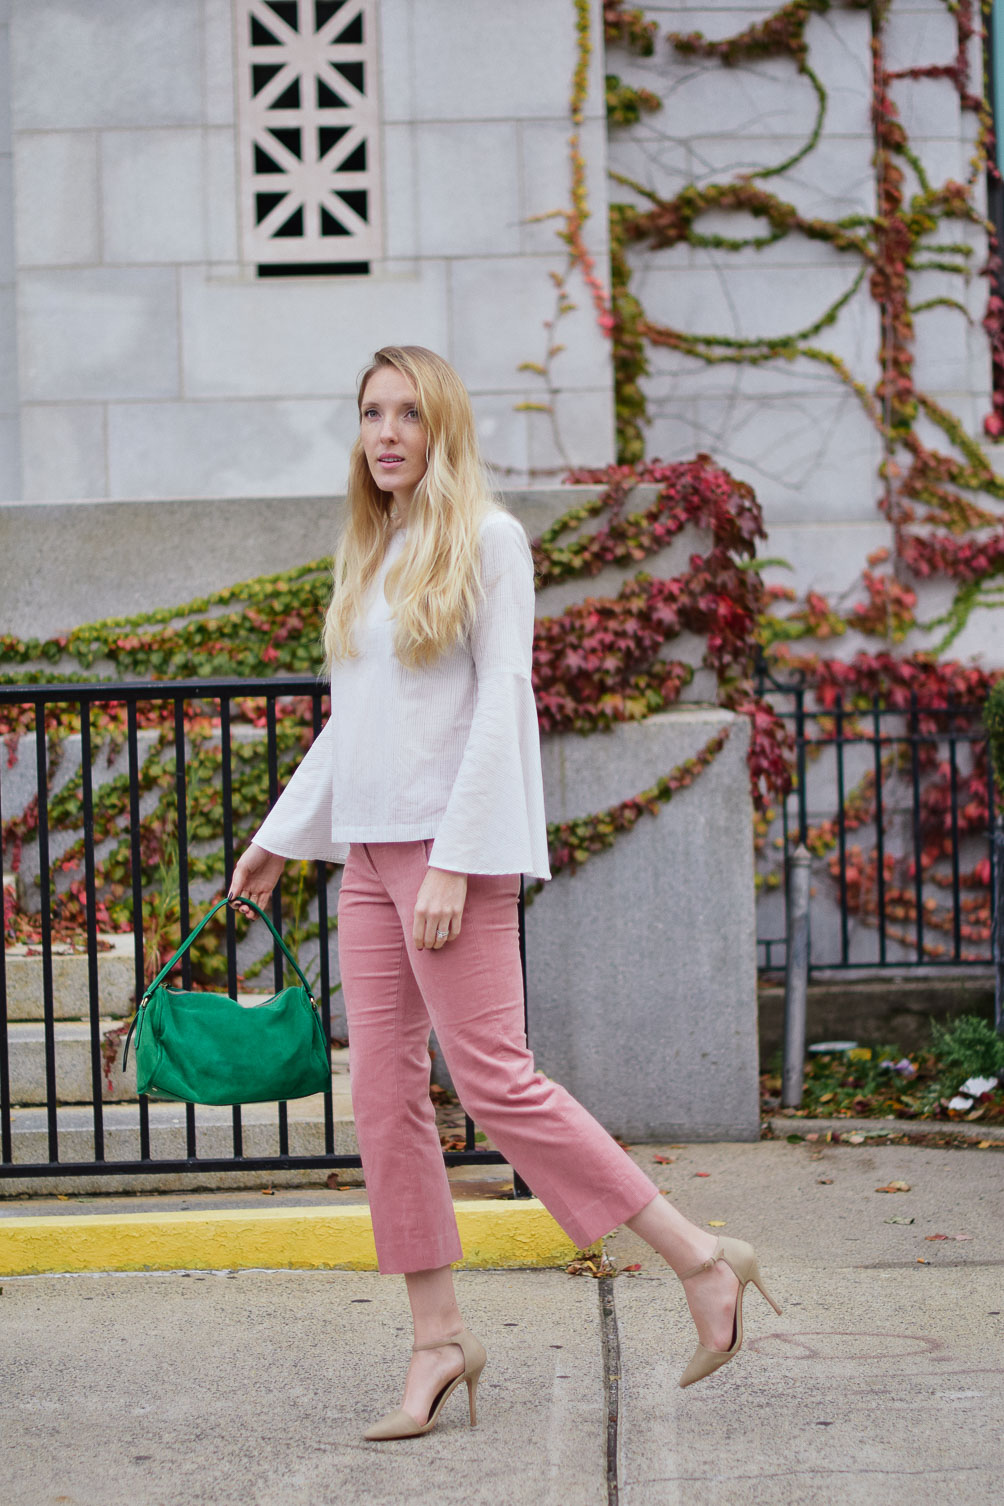 478ad0be4657 Leslie Musser wears cropped blush corduroys with a striped bell sleeve top  and emerald tote on